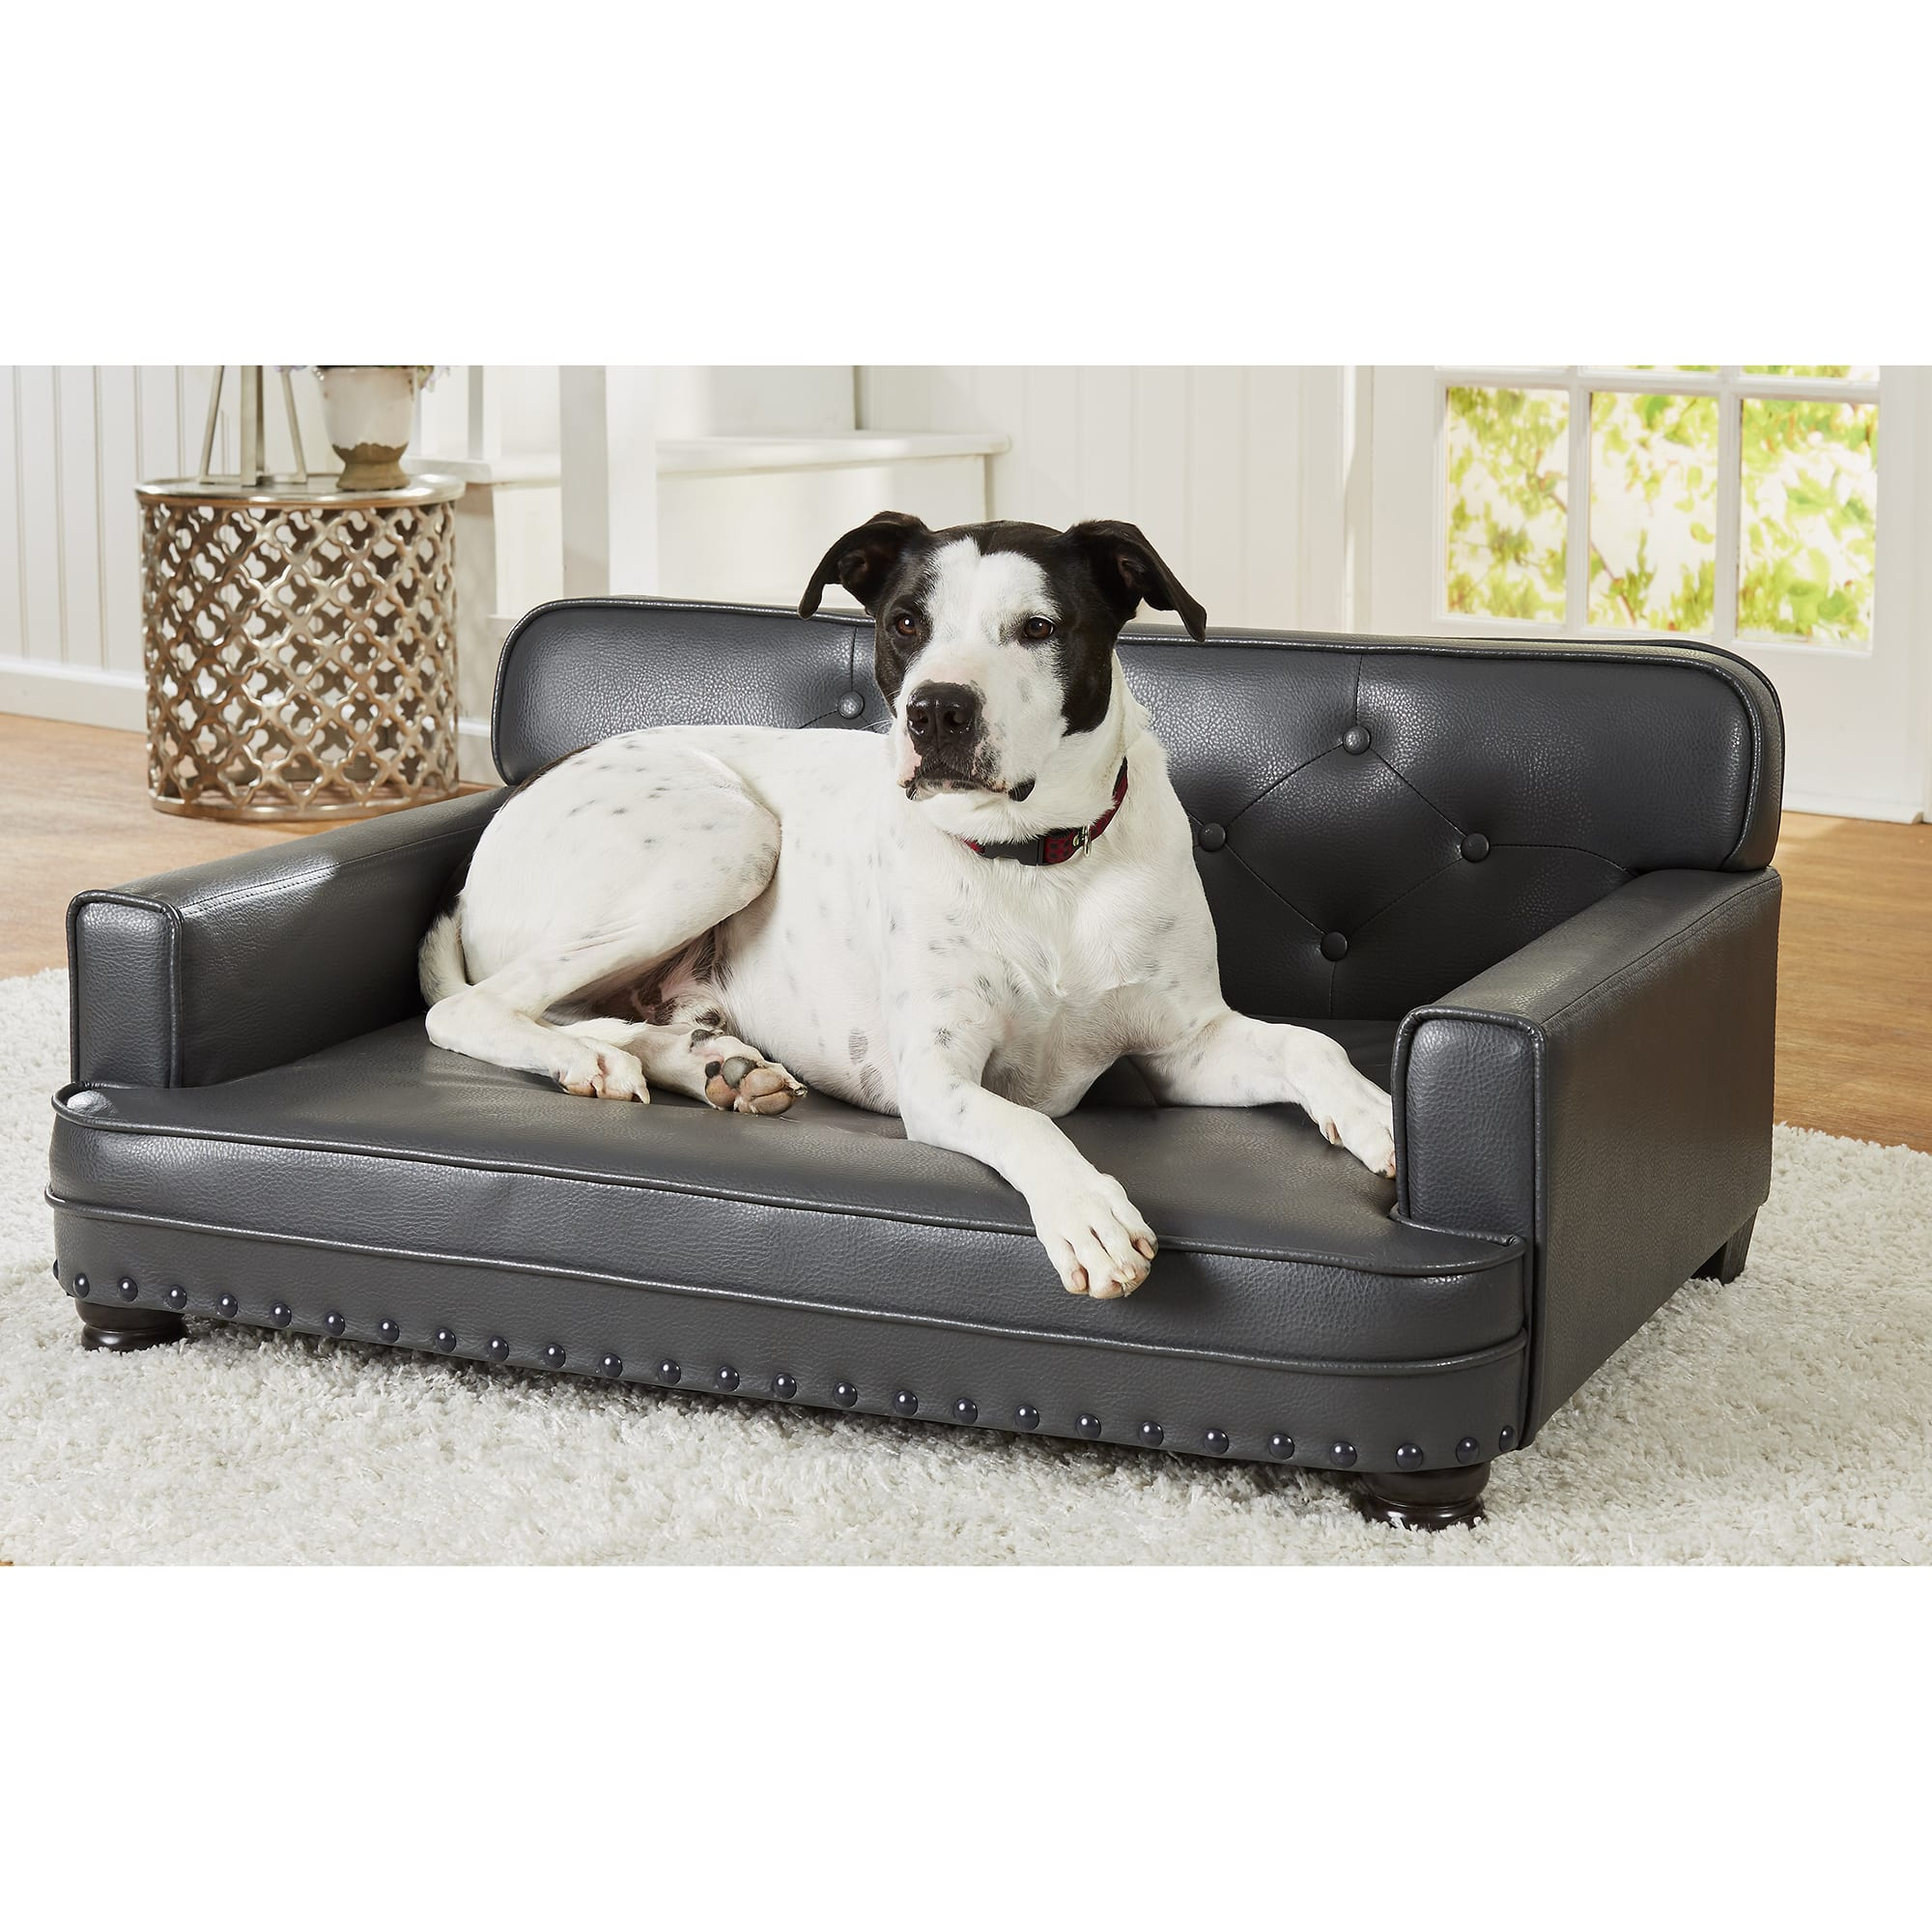 Library Pet Grey Sofa For Dog